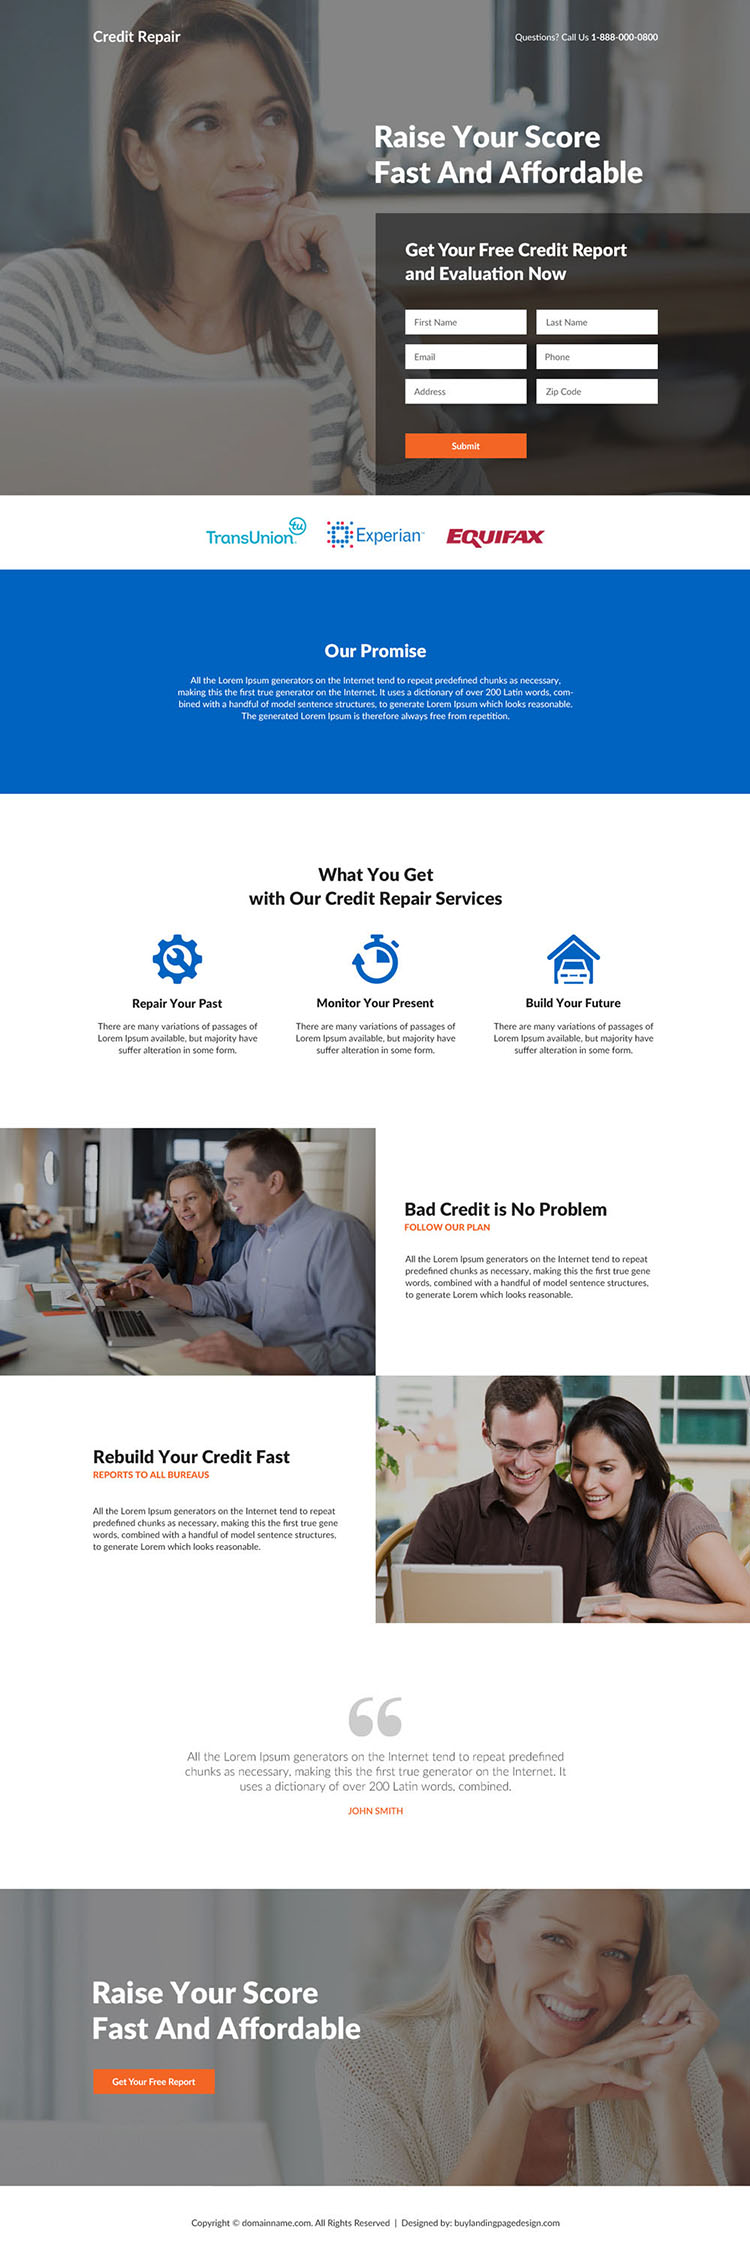 affordable credit repair services responsive landing page design